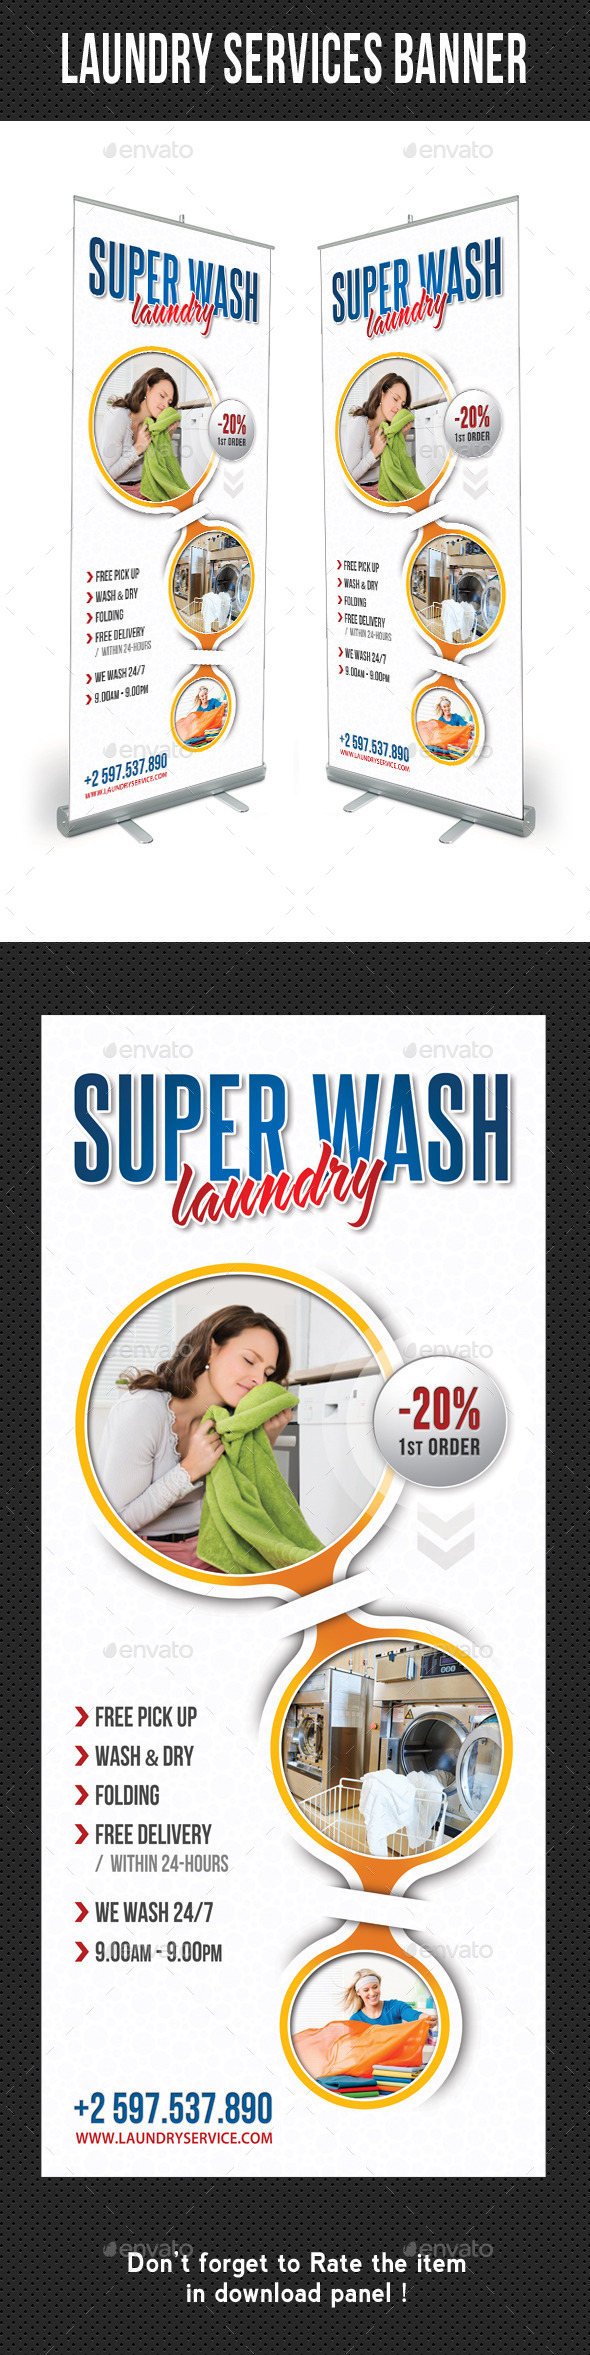 Laundry Services Banner Template V02 - Signage Print Templates